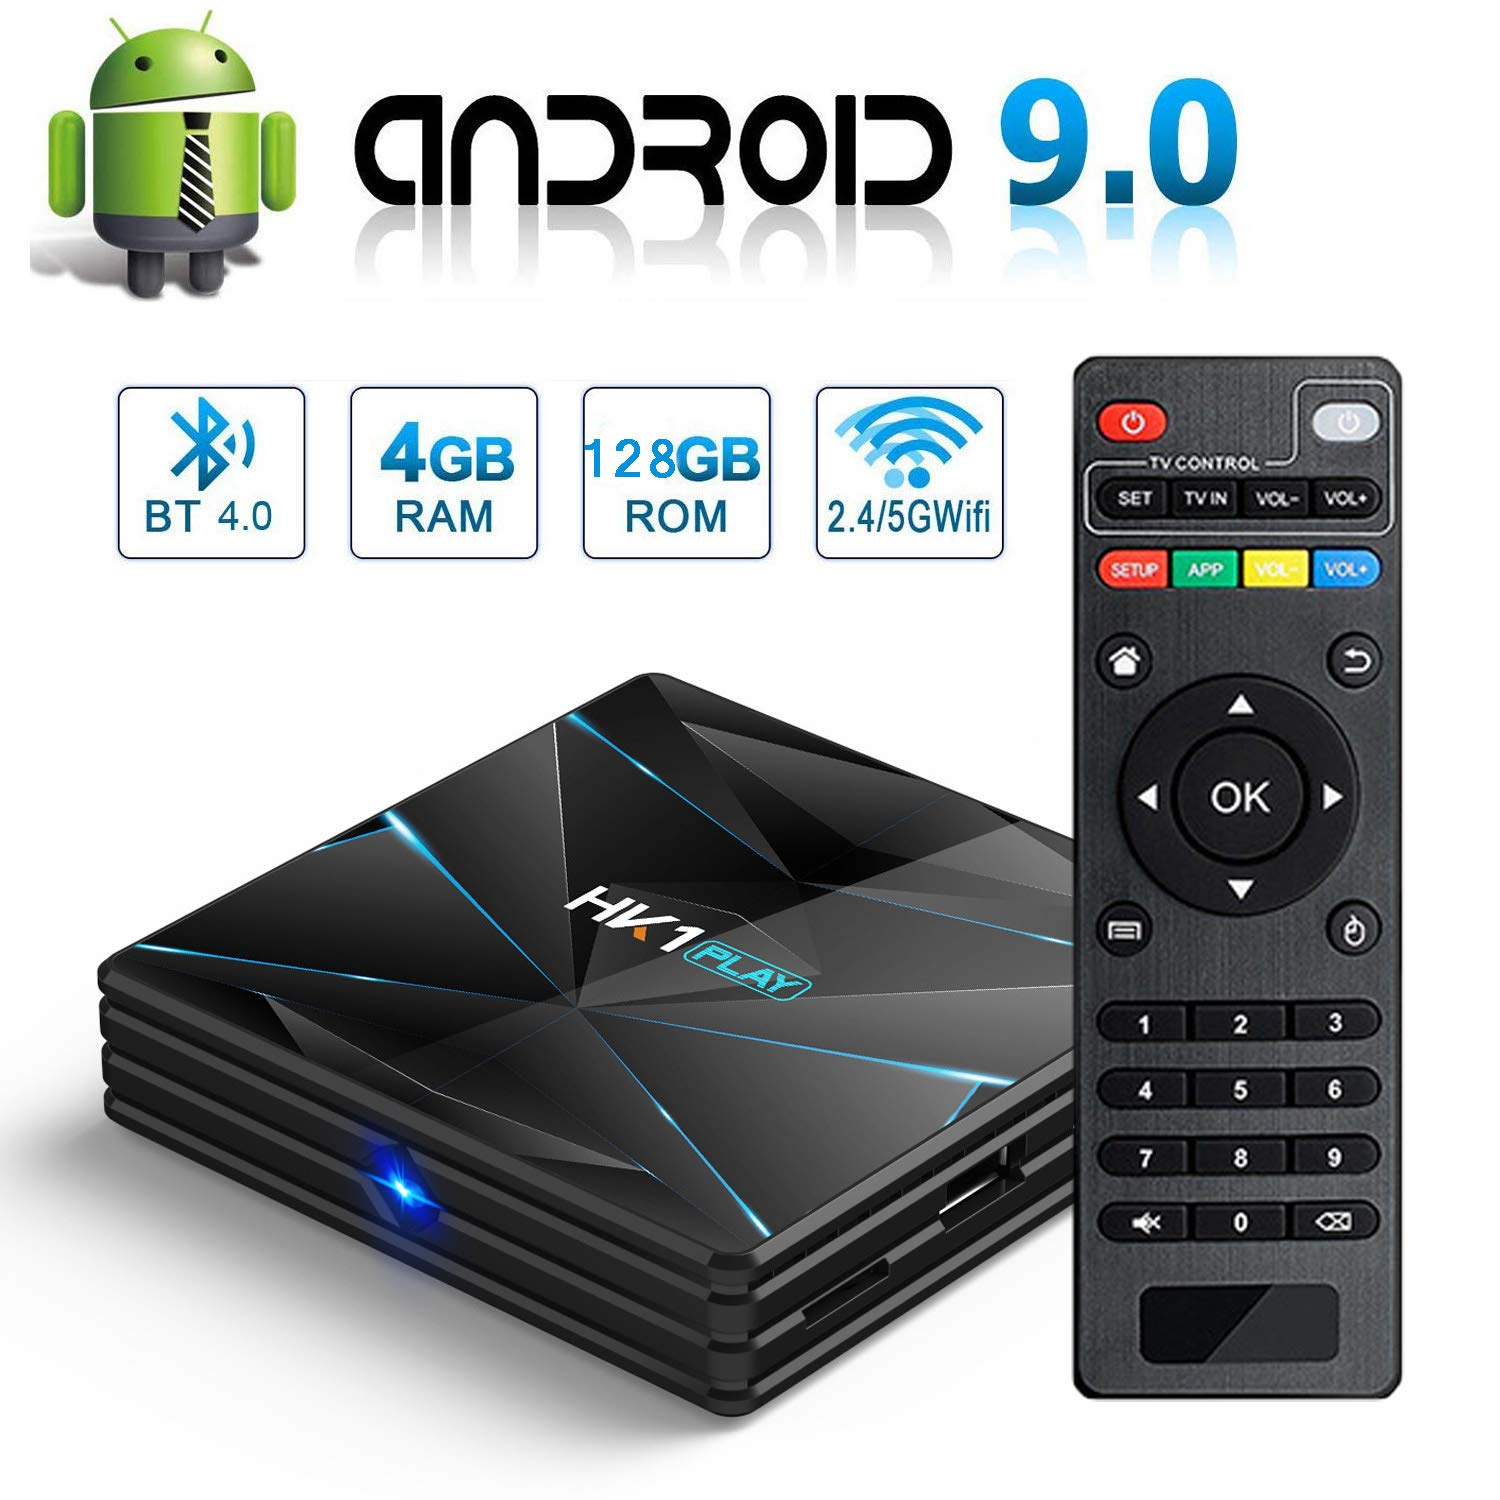 TV Box Android 9.0, Smart TV Box 4GB RAM 128GB ROM Amlogic Quad Core S905X2, Dual WiFi 2.4G / 5G BT 4.0 Ethernet H.265 USB 3.0 3D Soporte 4K Ultra HD Media